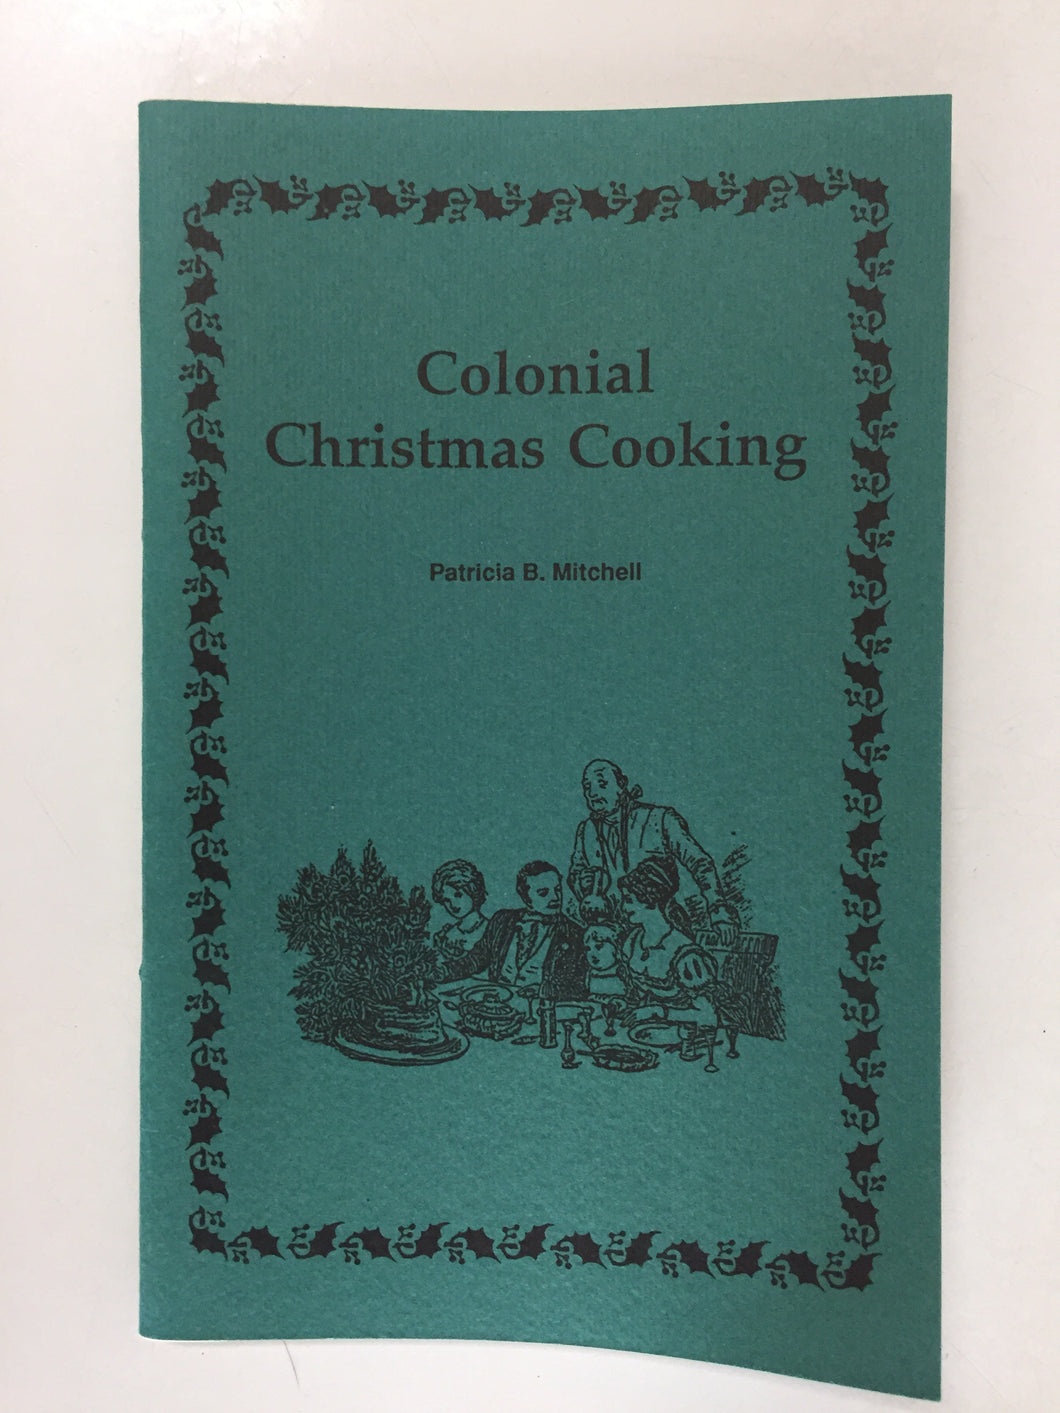 Colonial Christmas Cooking - Slick Cat Books